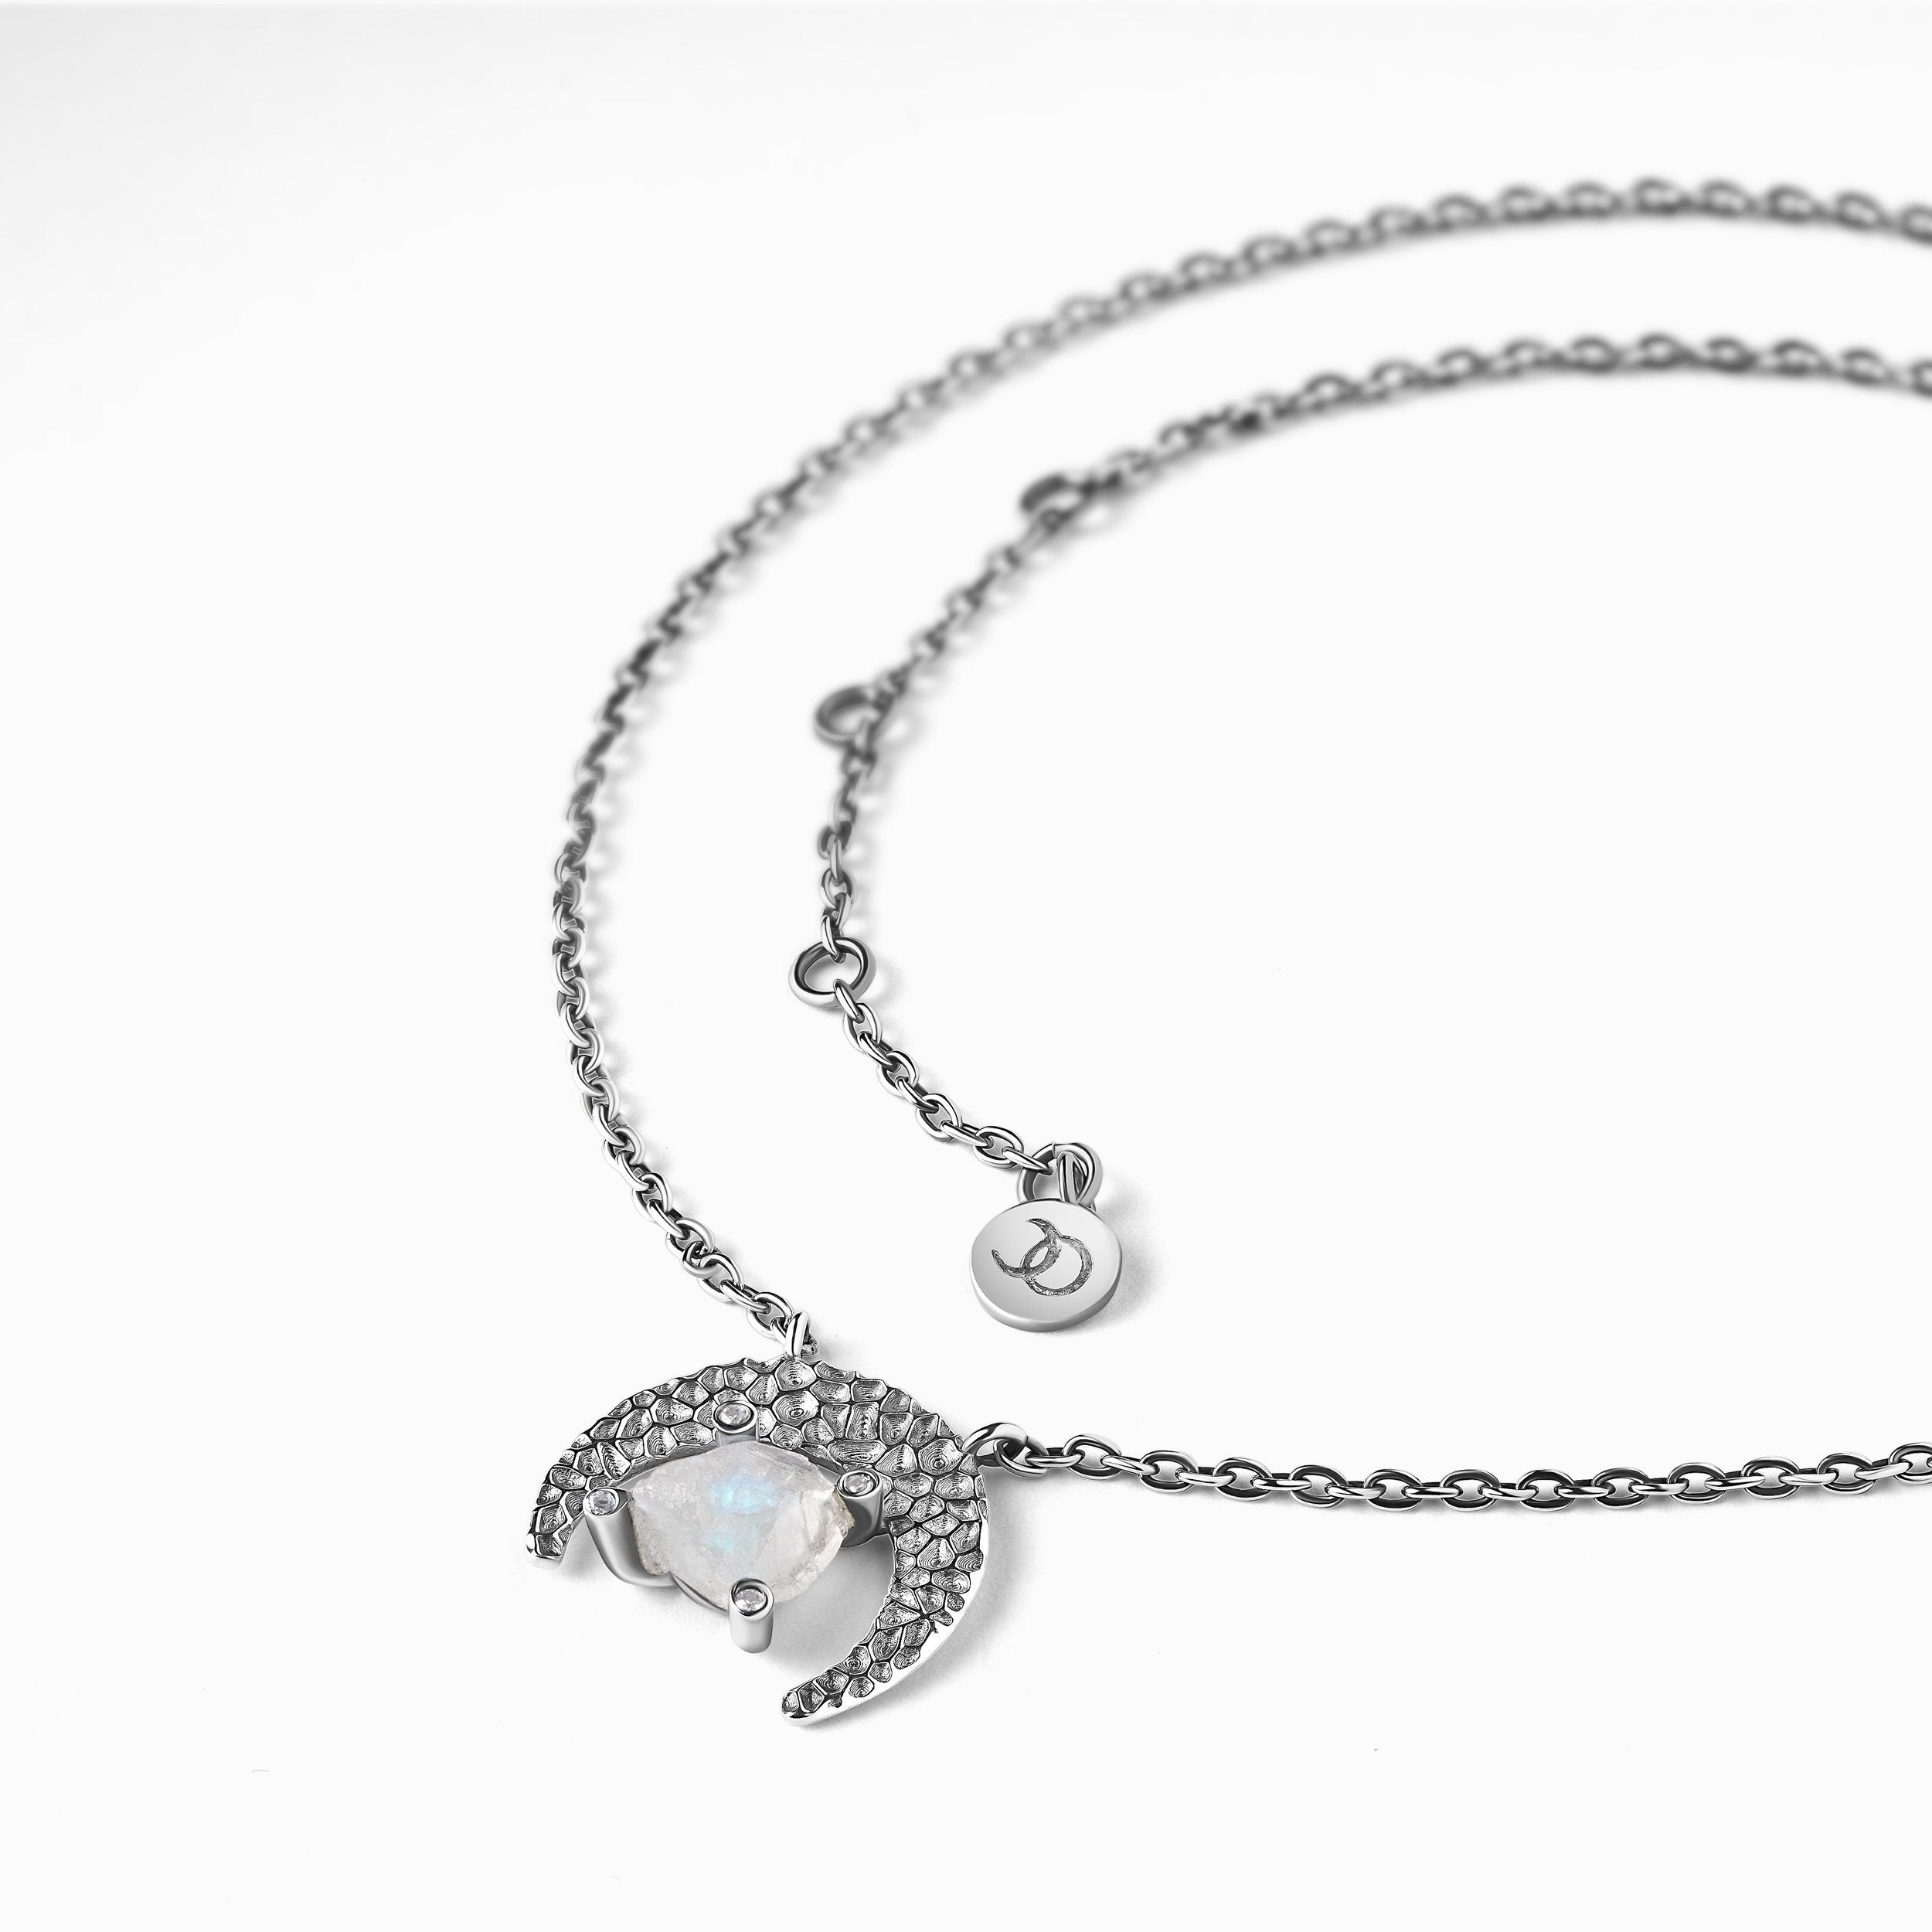 Pretty silver and and crystal necklace